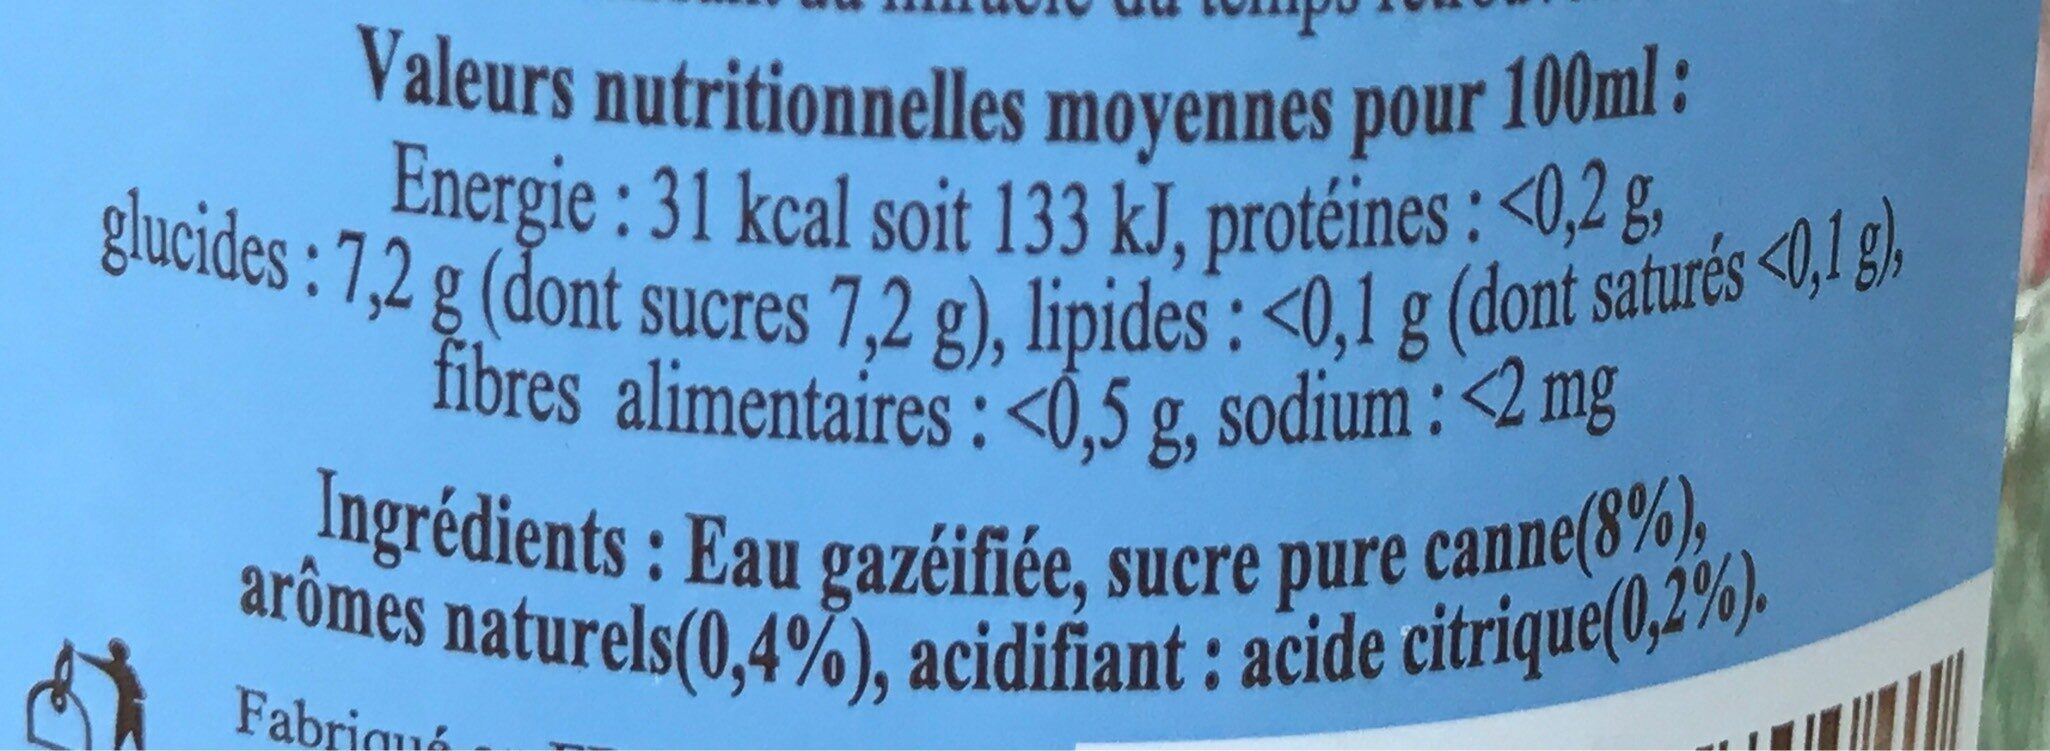 Elixia Limonade Sapin (750ml Flasche) - Informations nutritionnelles - fr